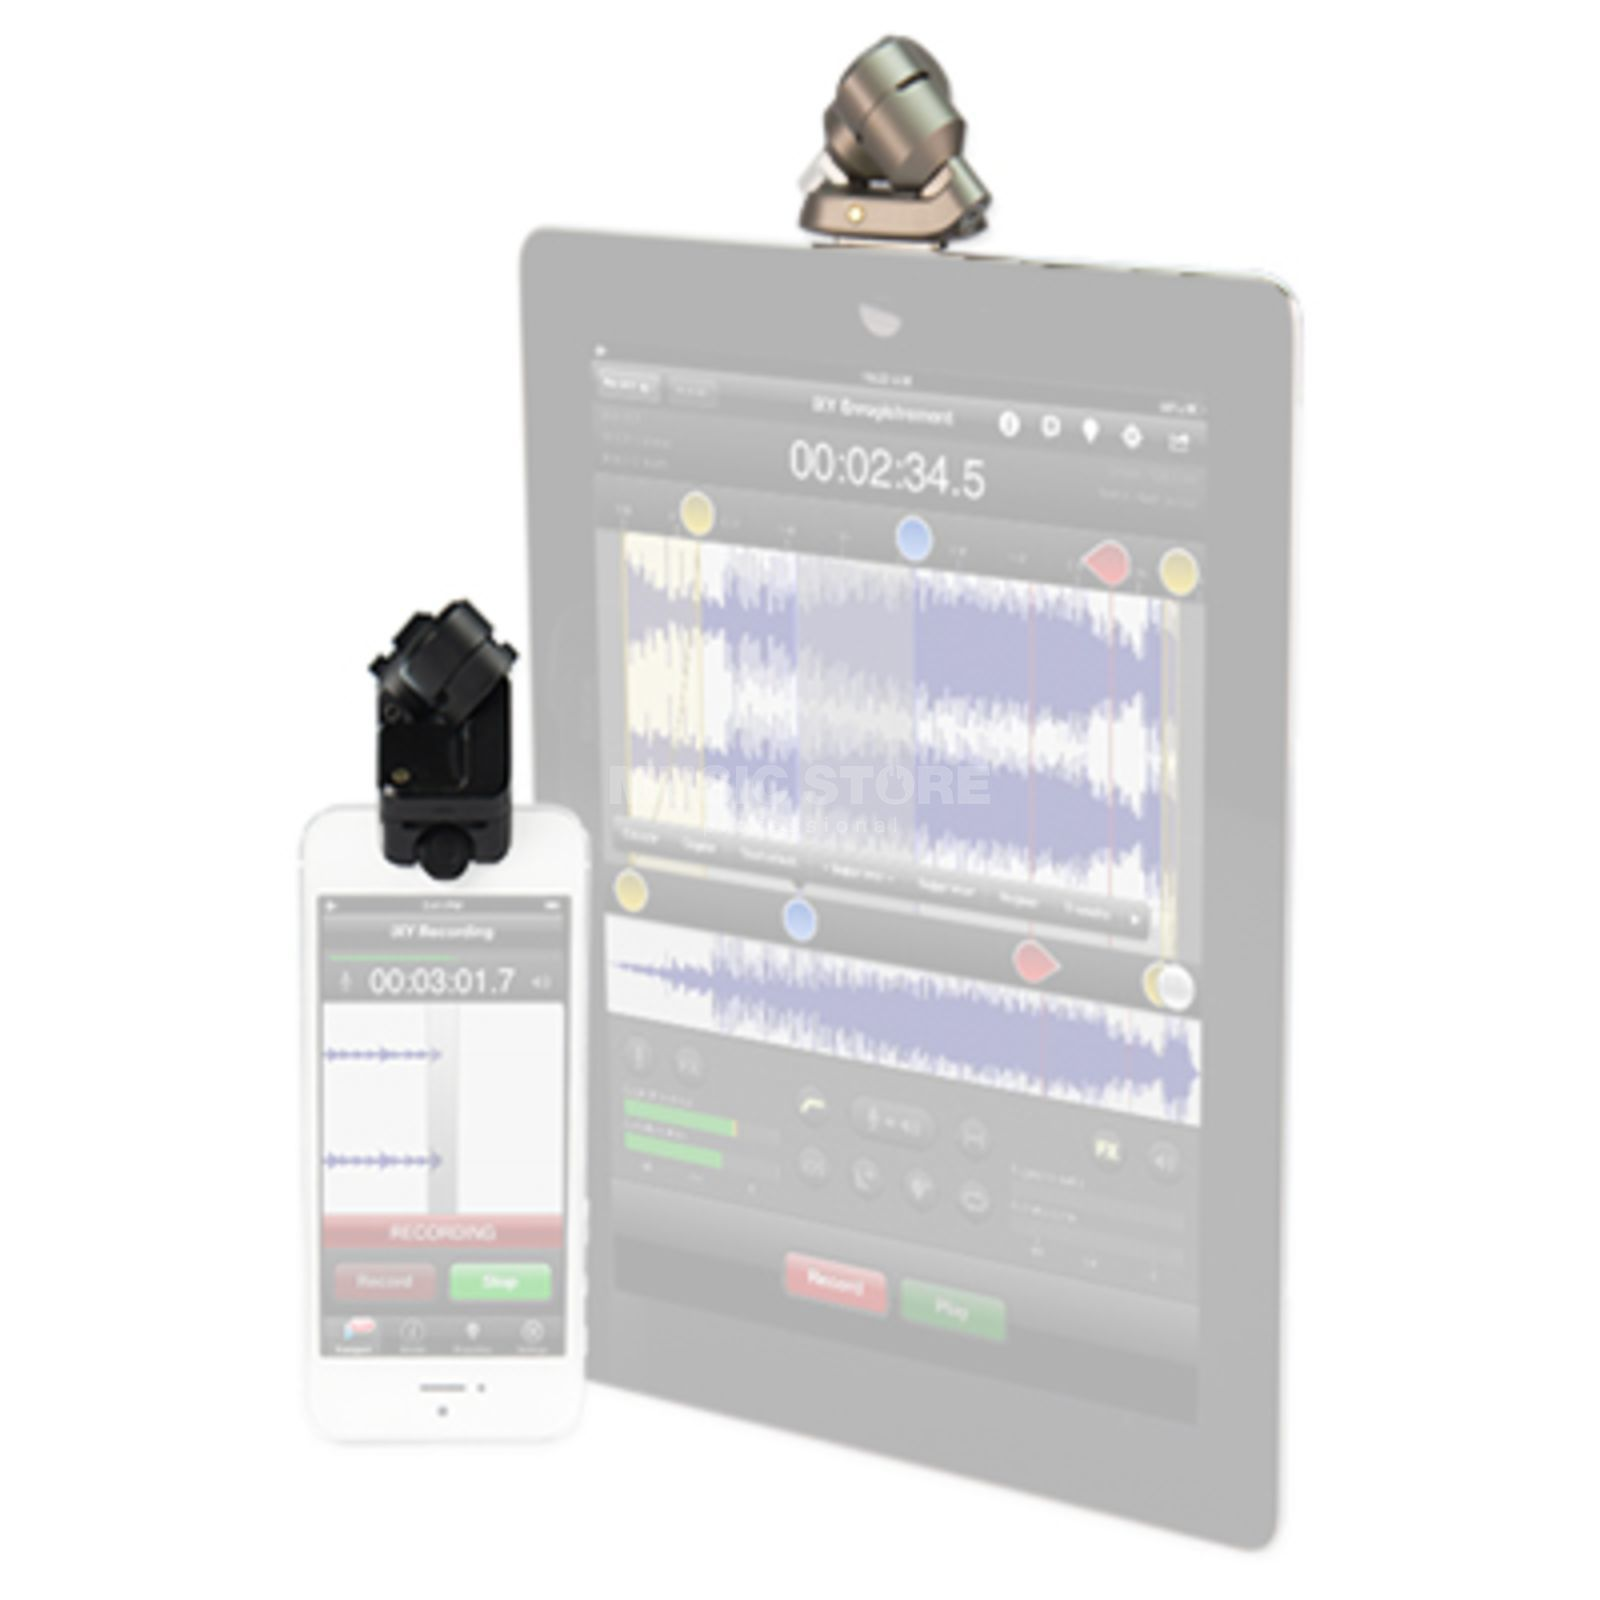 Rode iXY Lightning Stereomikrofon for iPhone und iPad Product Image